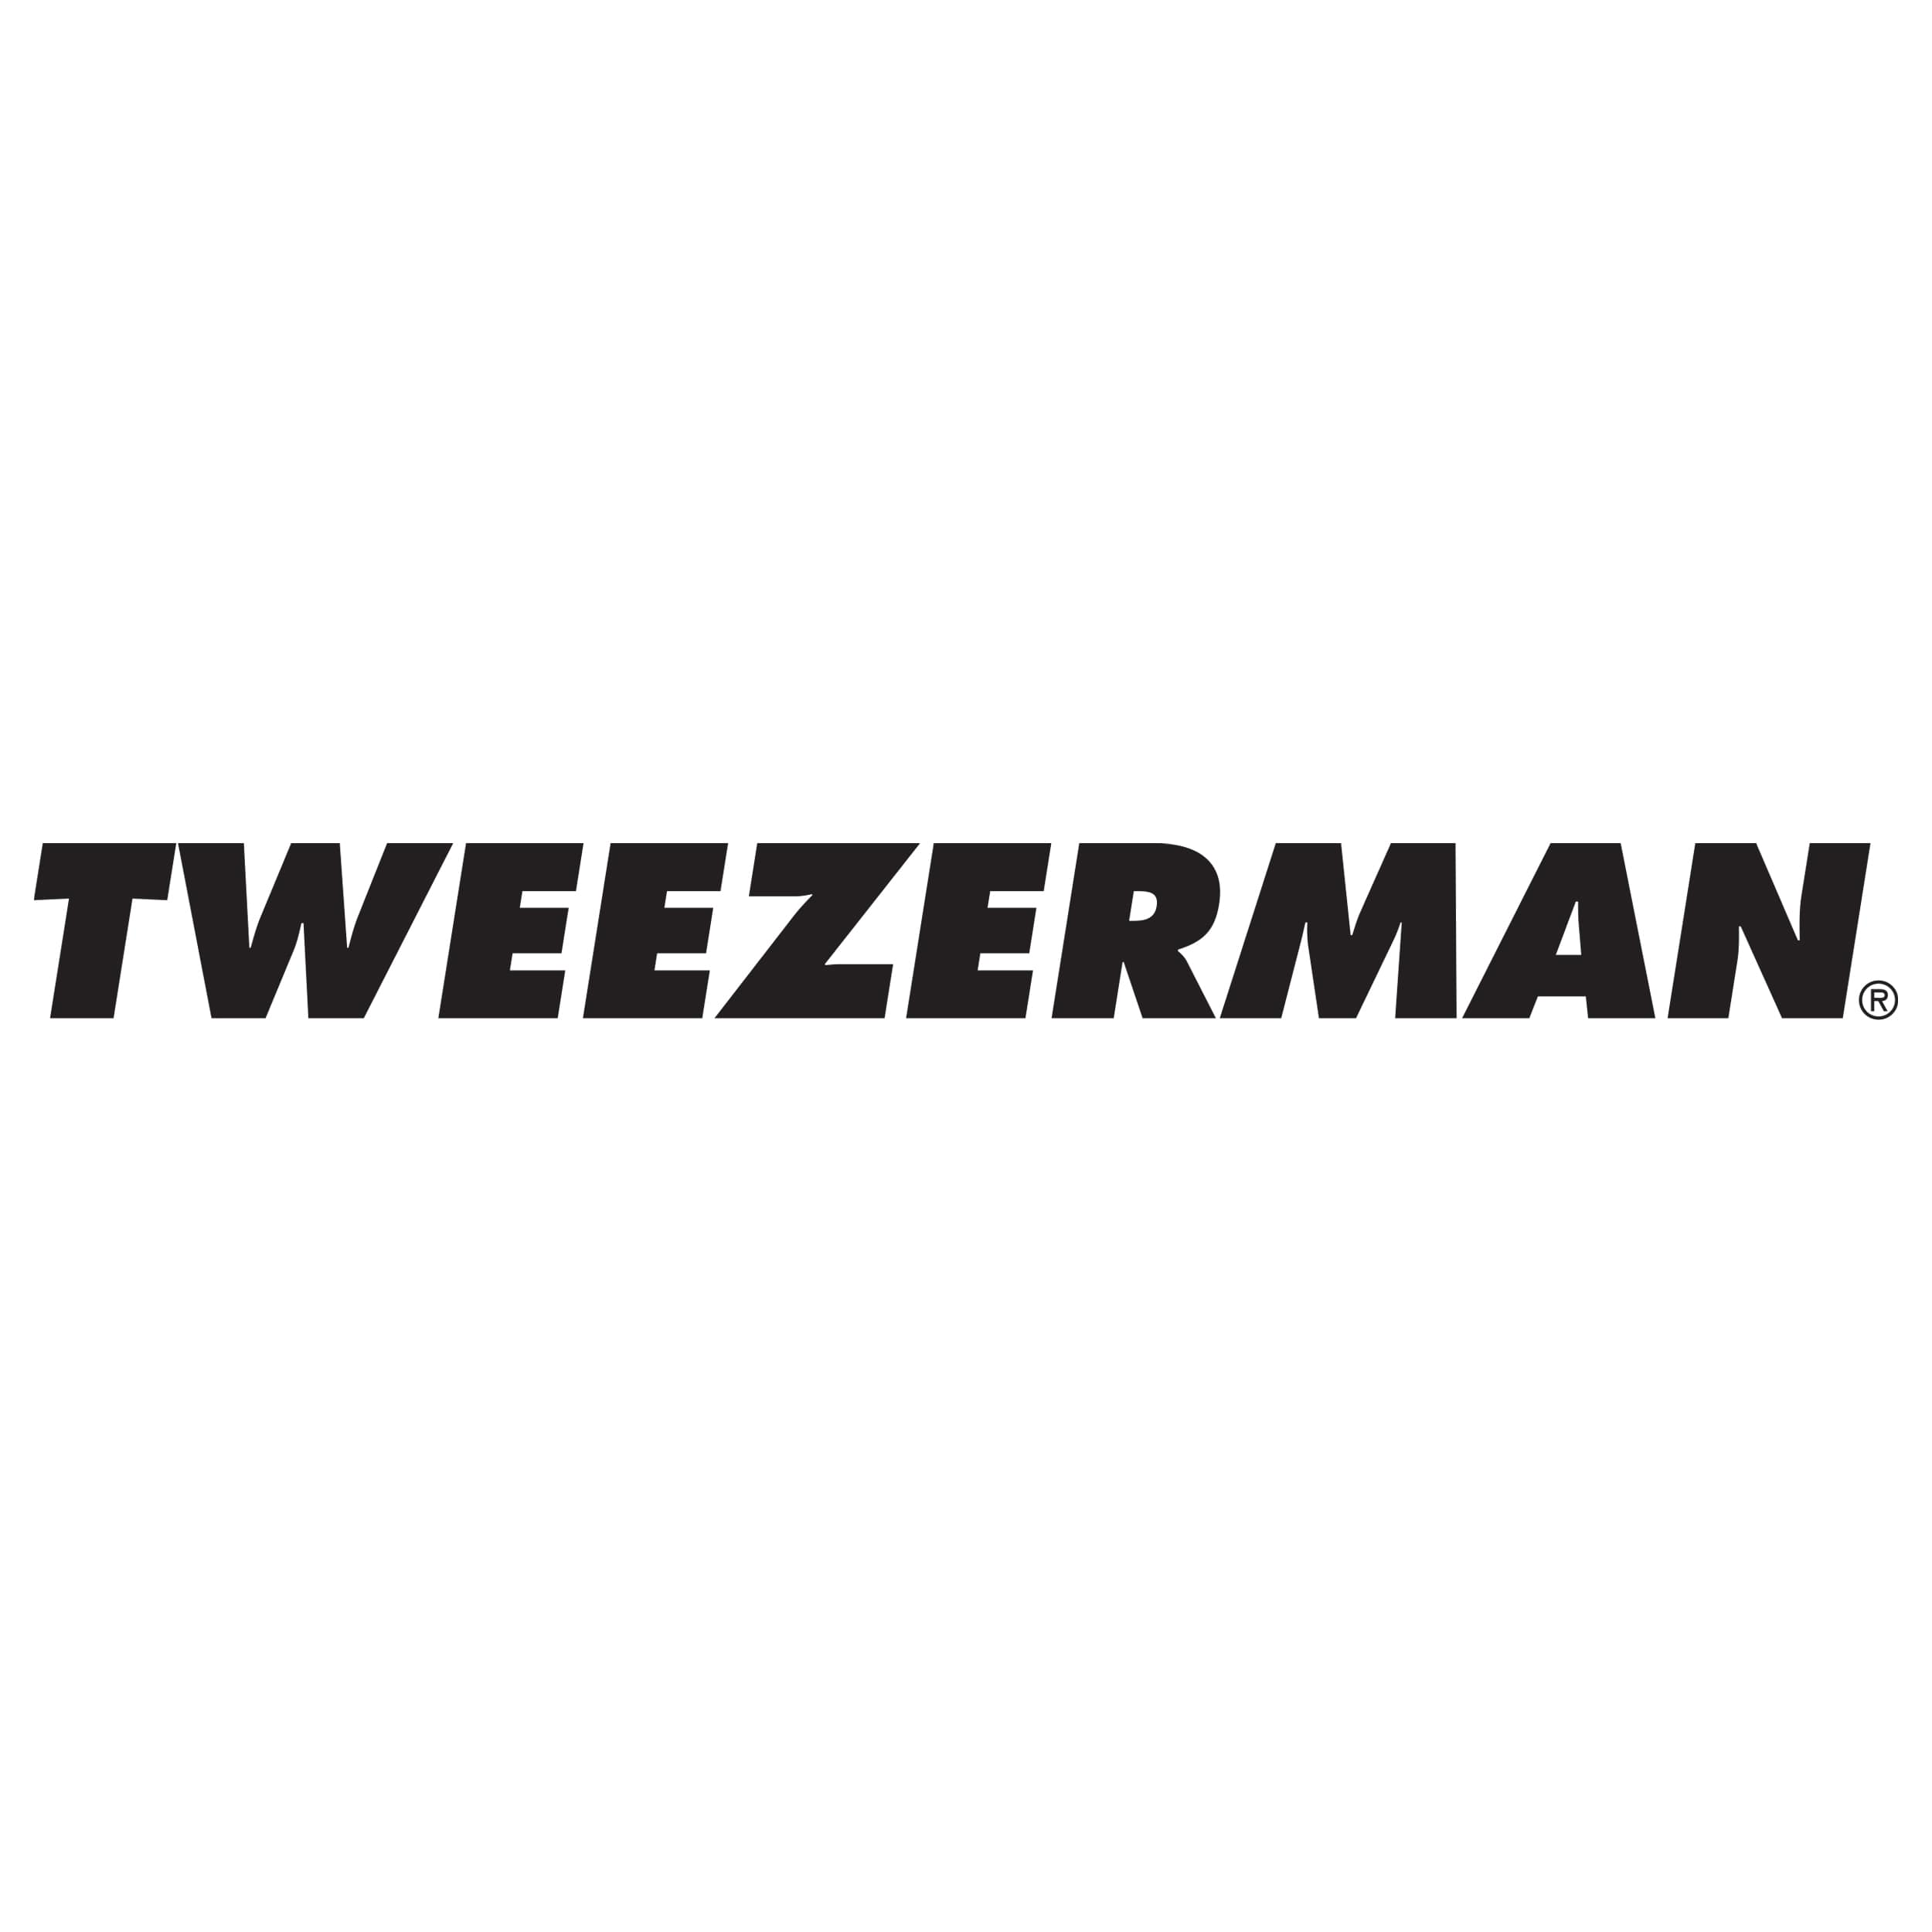 Stainless Steel Fingernail Clipper